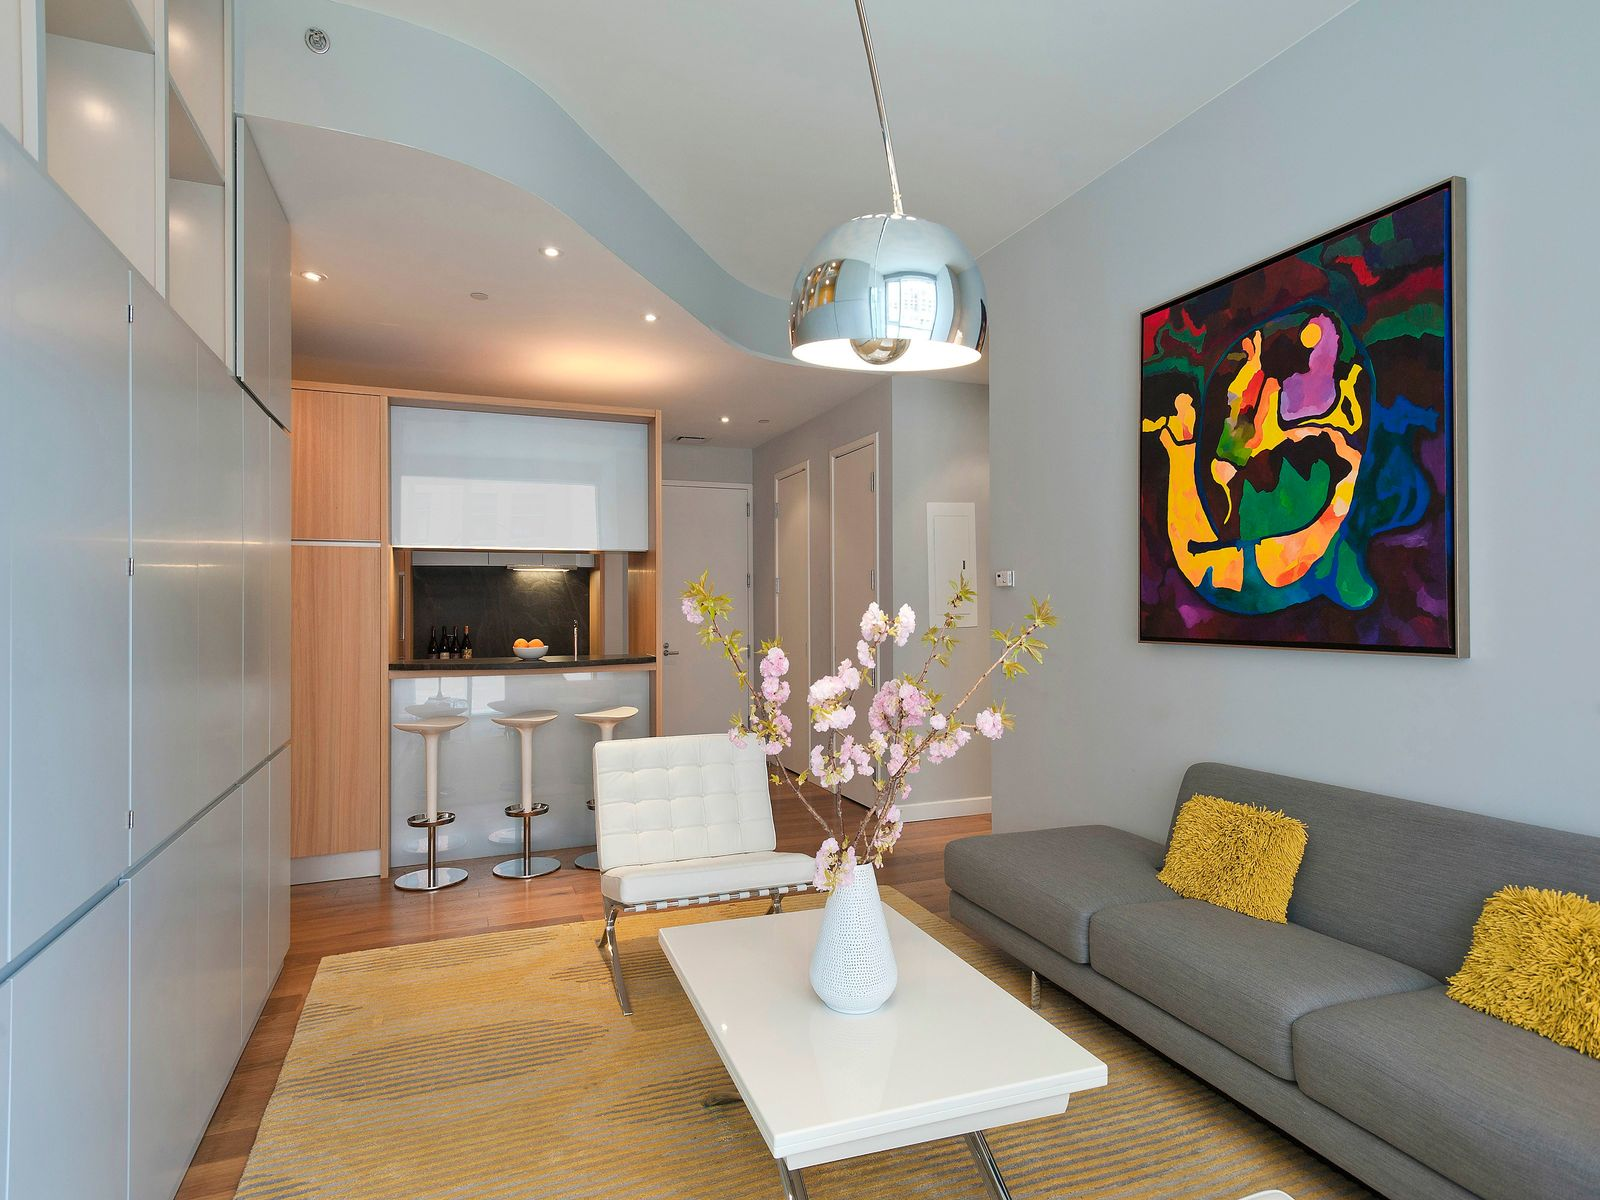 Lofty 2 bed/2 bath at Soho Mews